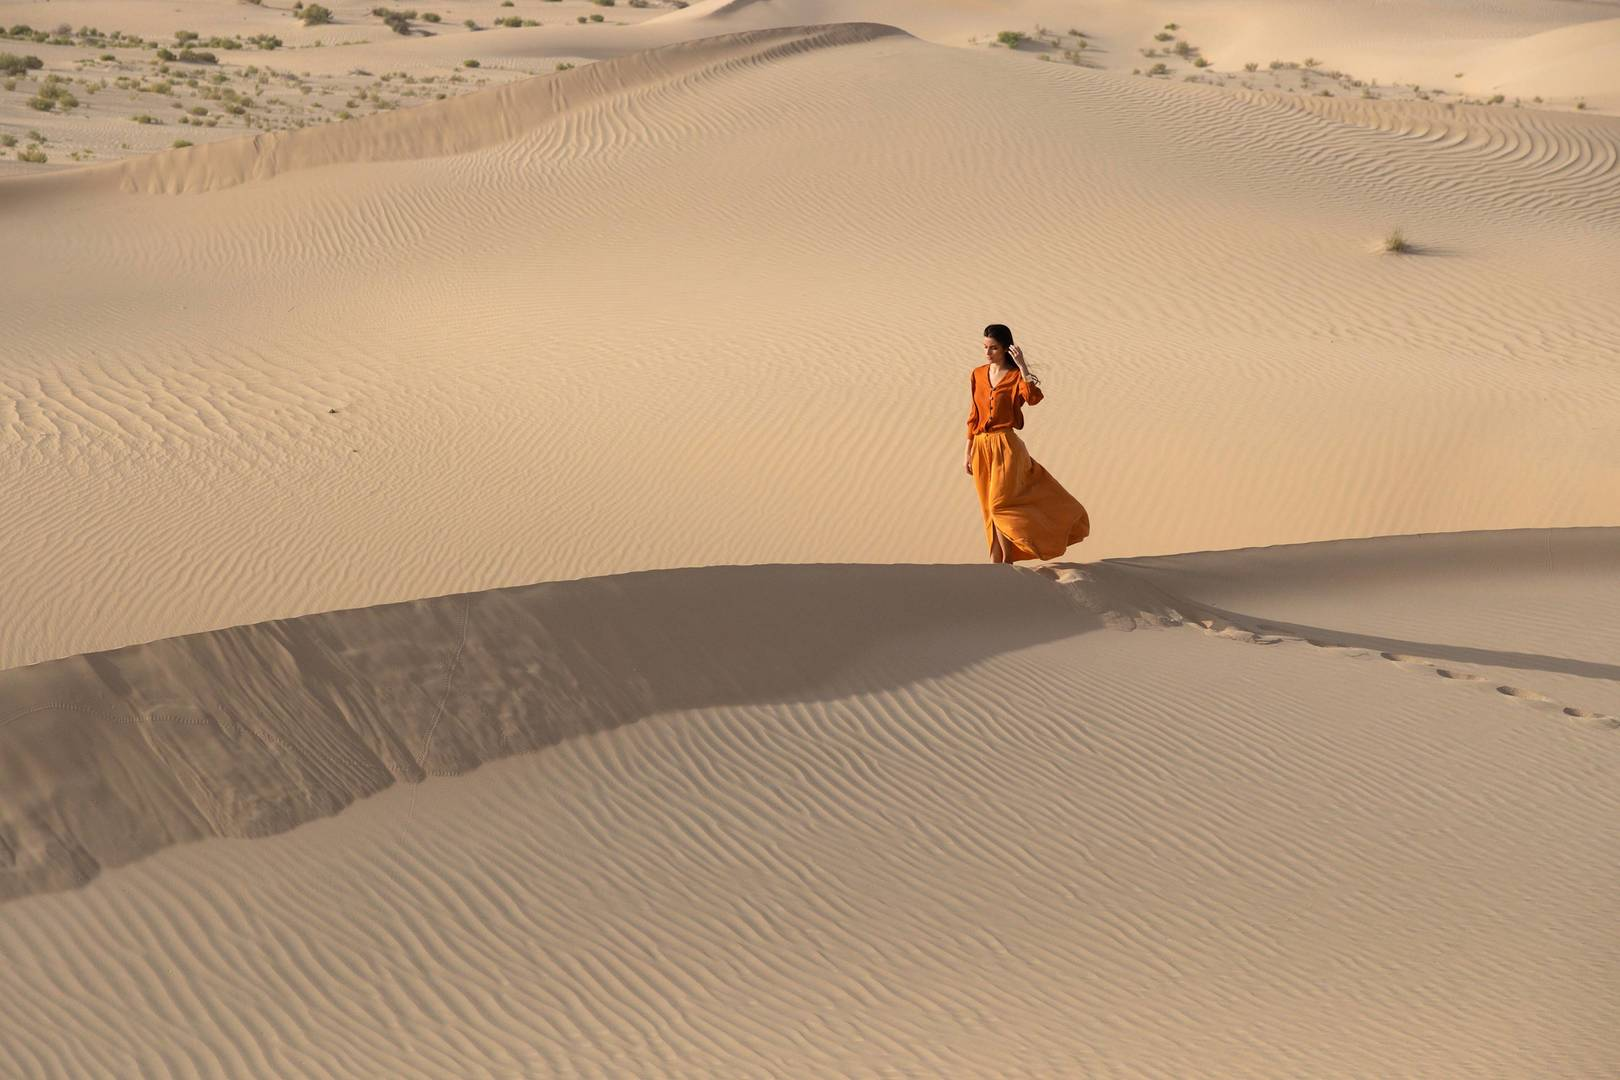 Lady walking on a dune